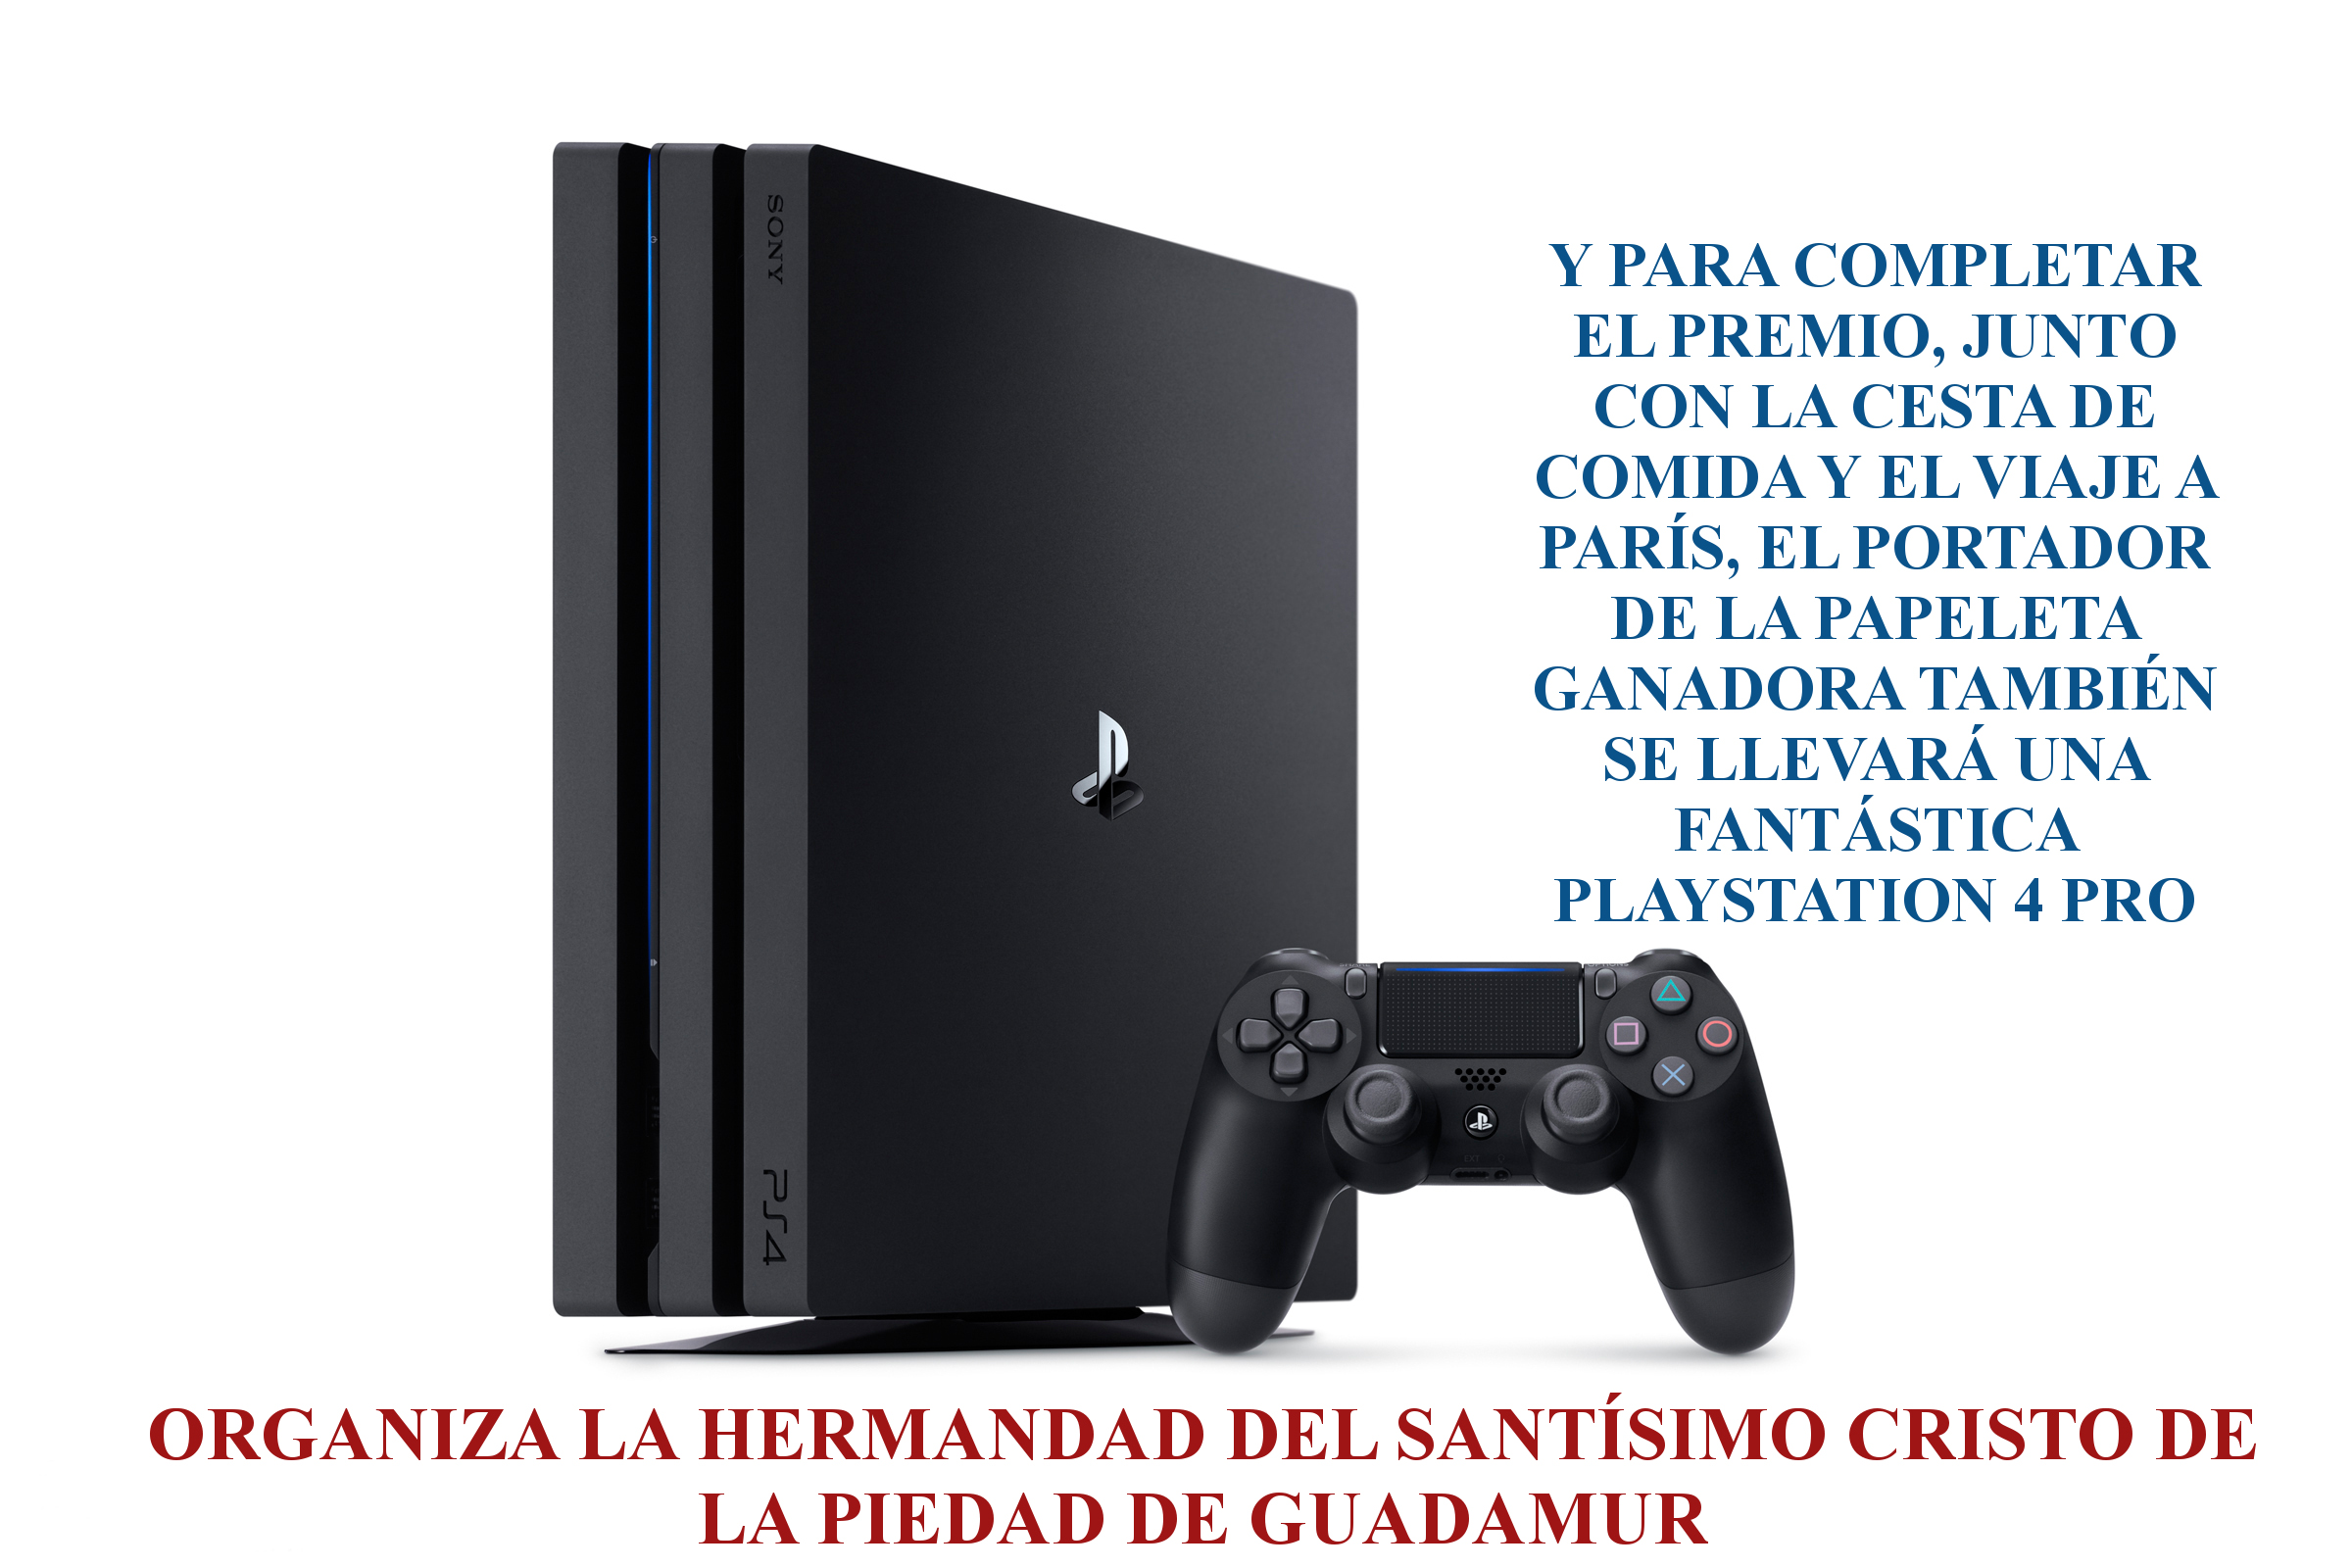 3126156-ps4_7000_01_withnotice